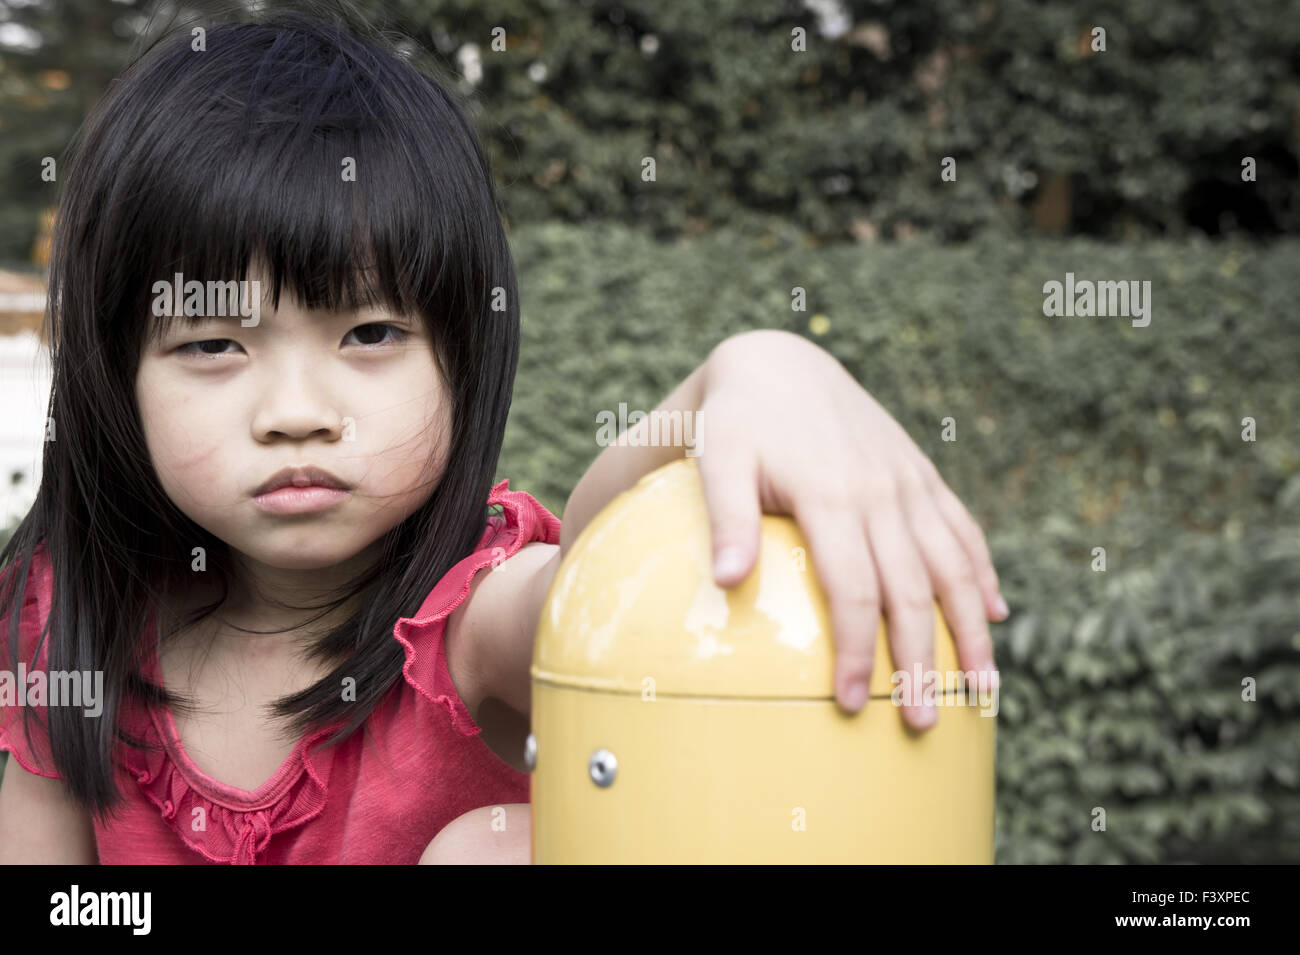 Abandon Girl - Stock Image